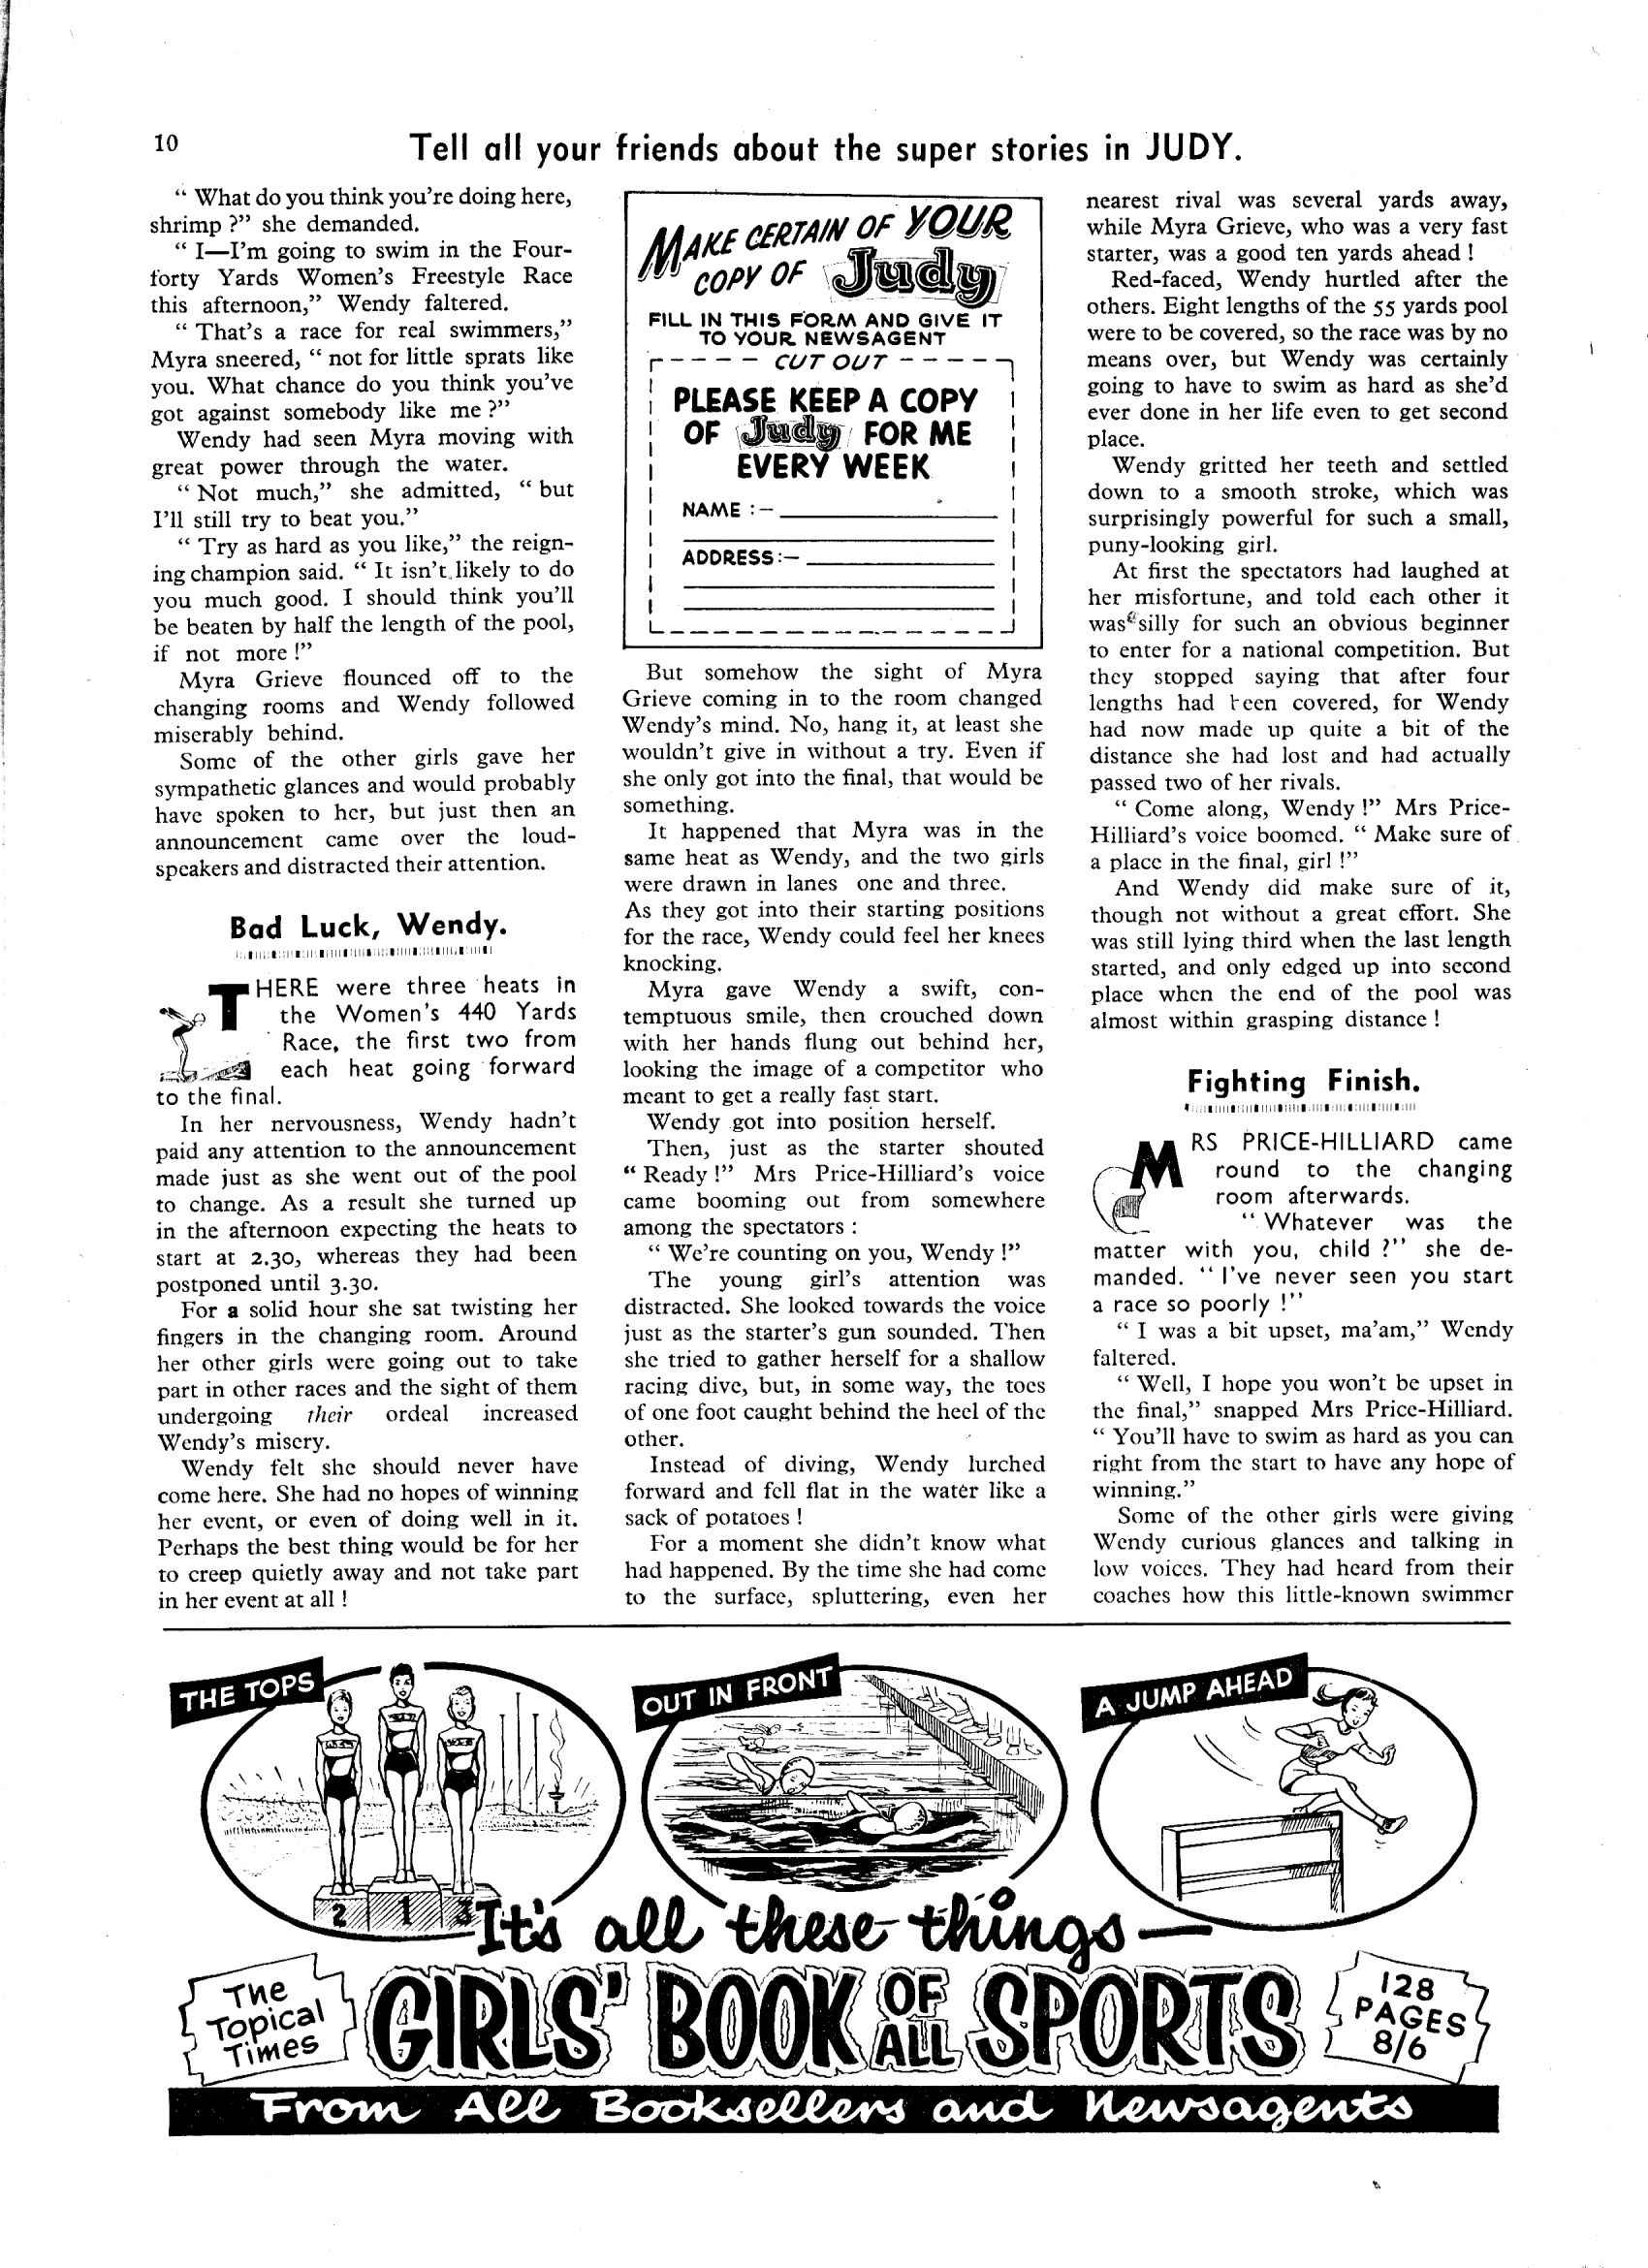 Read online Judy comic -  Issue #42 - 10